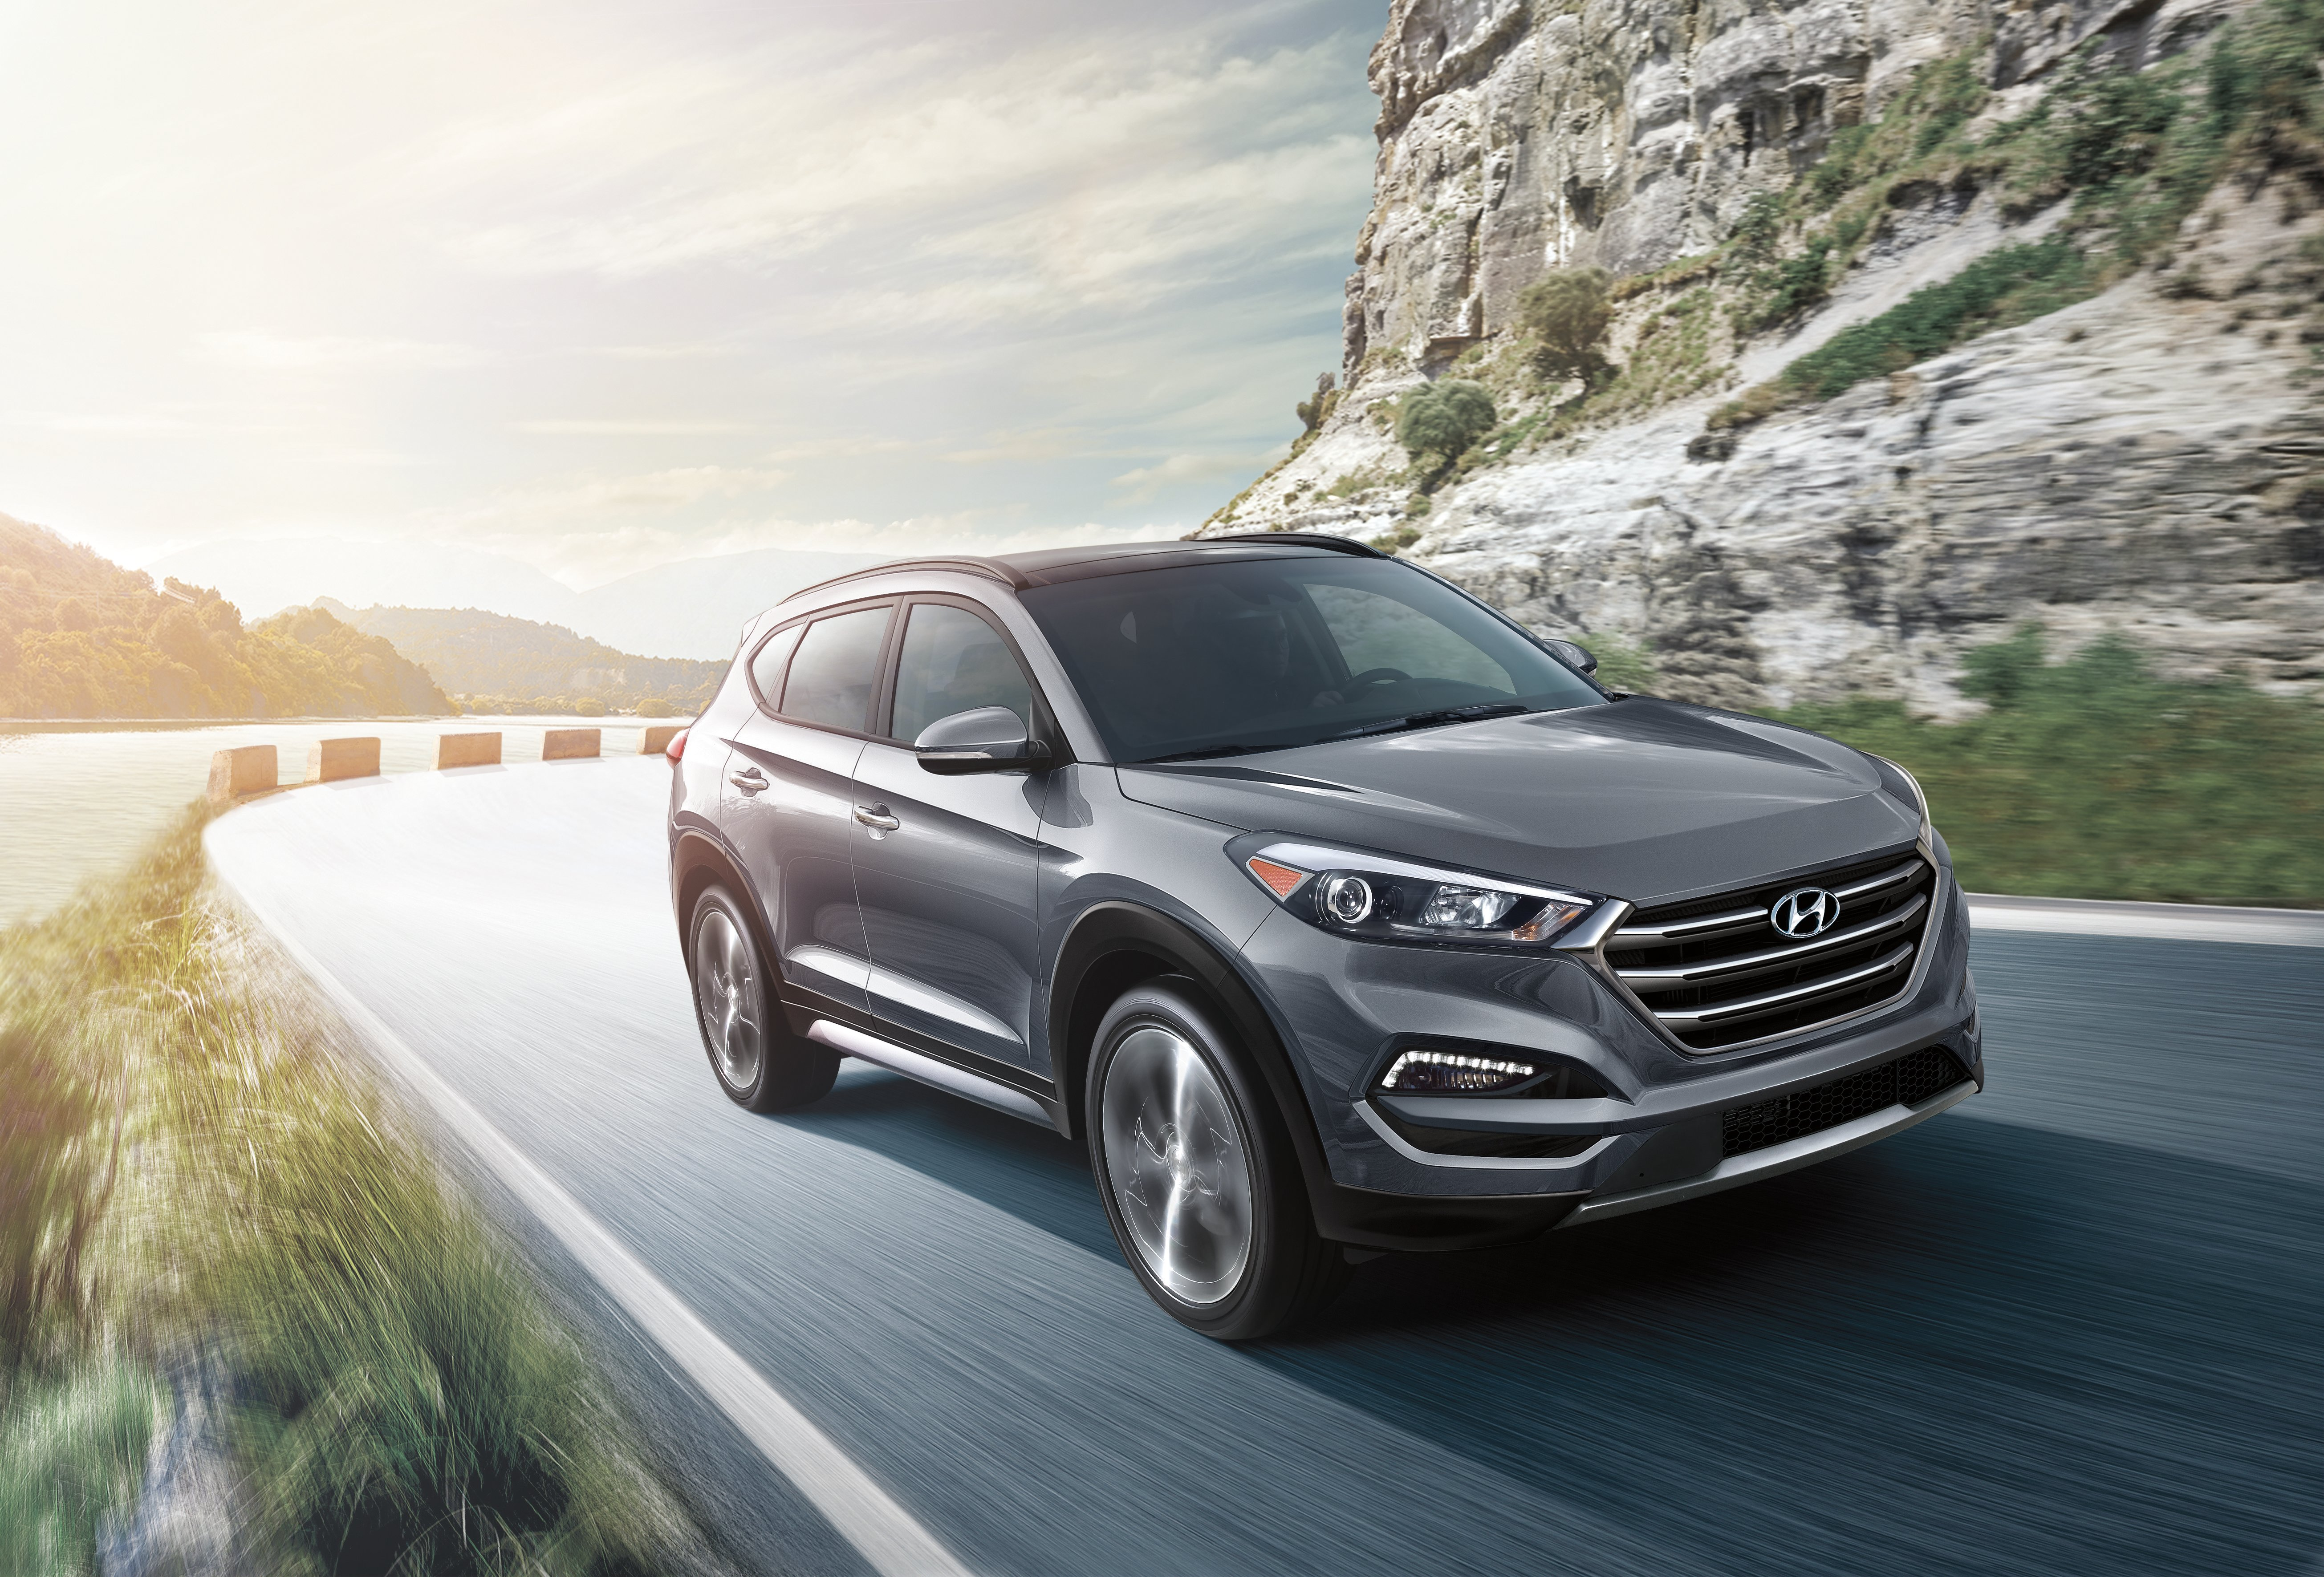 2018 Hyundai Tucson driving on the coast